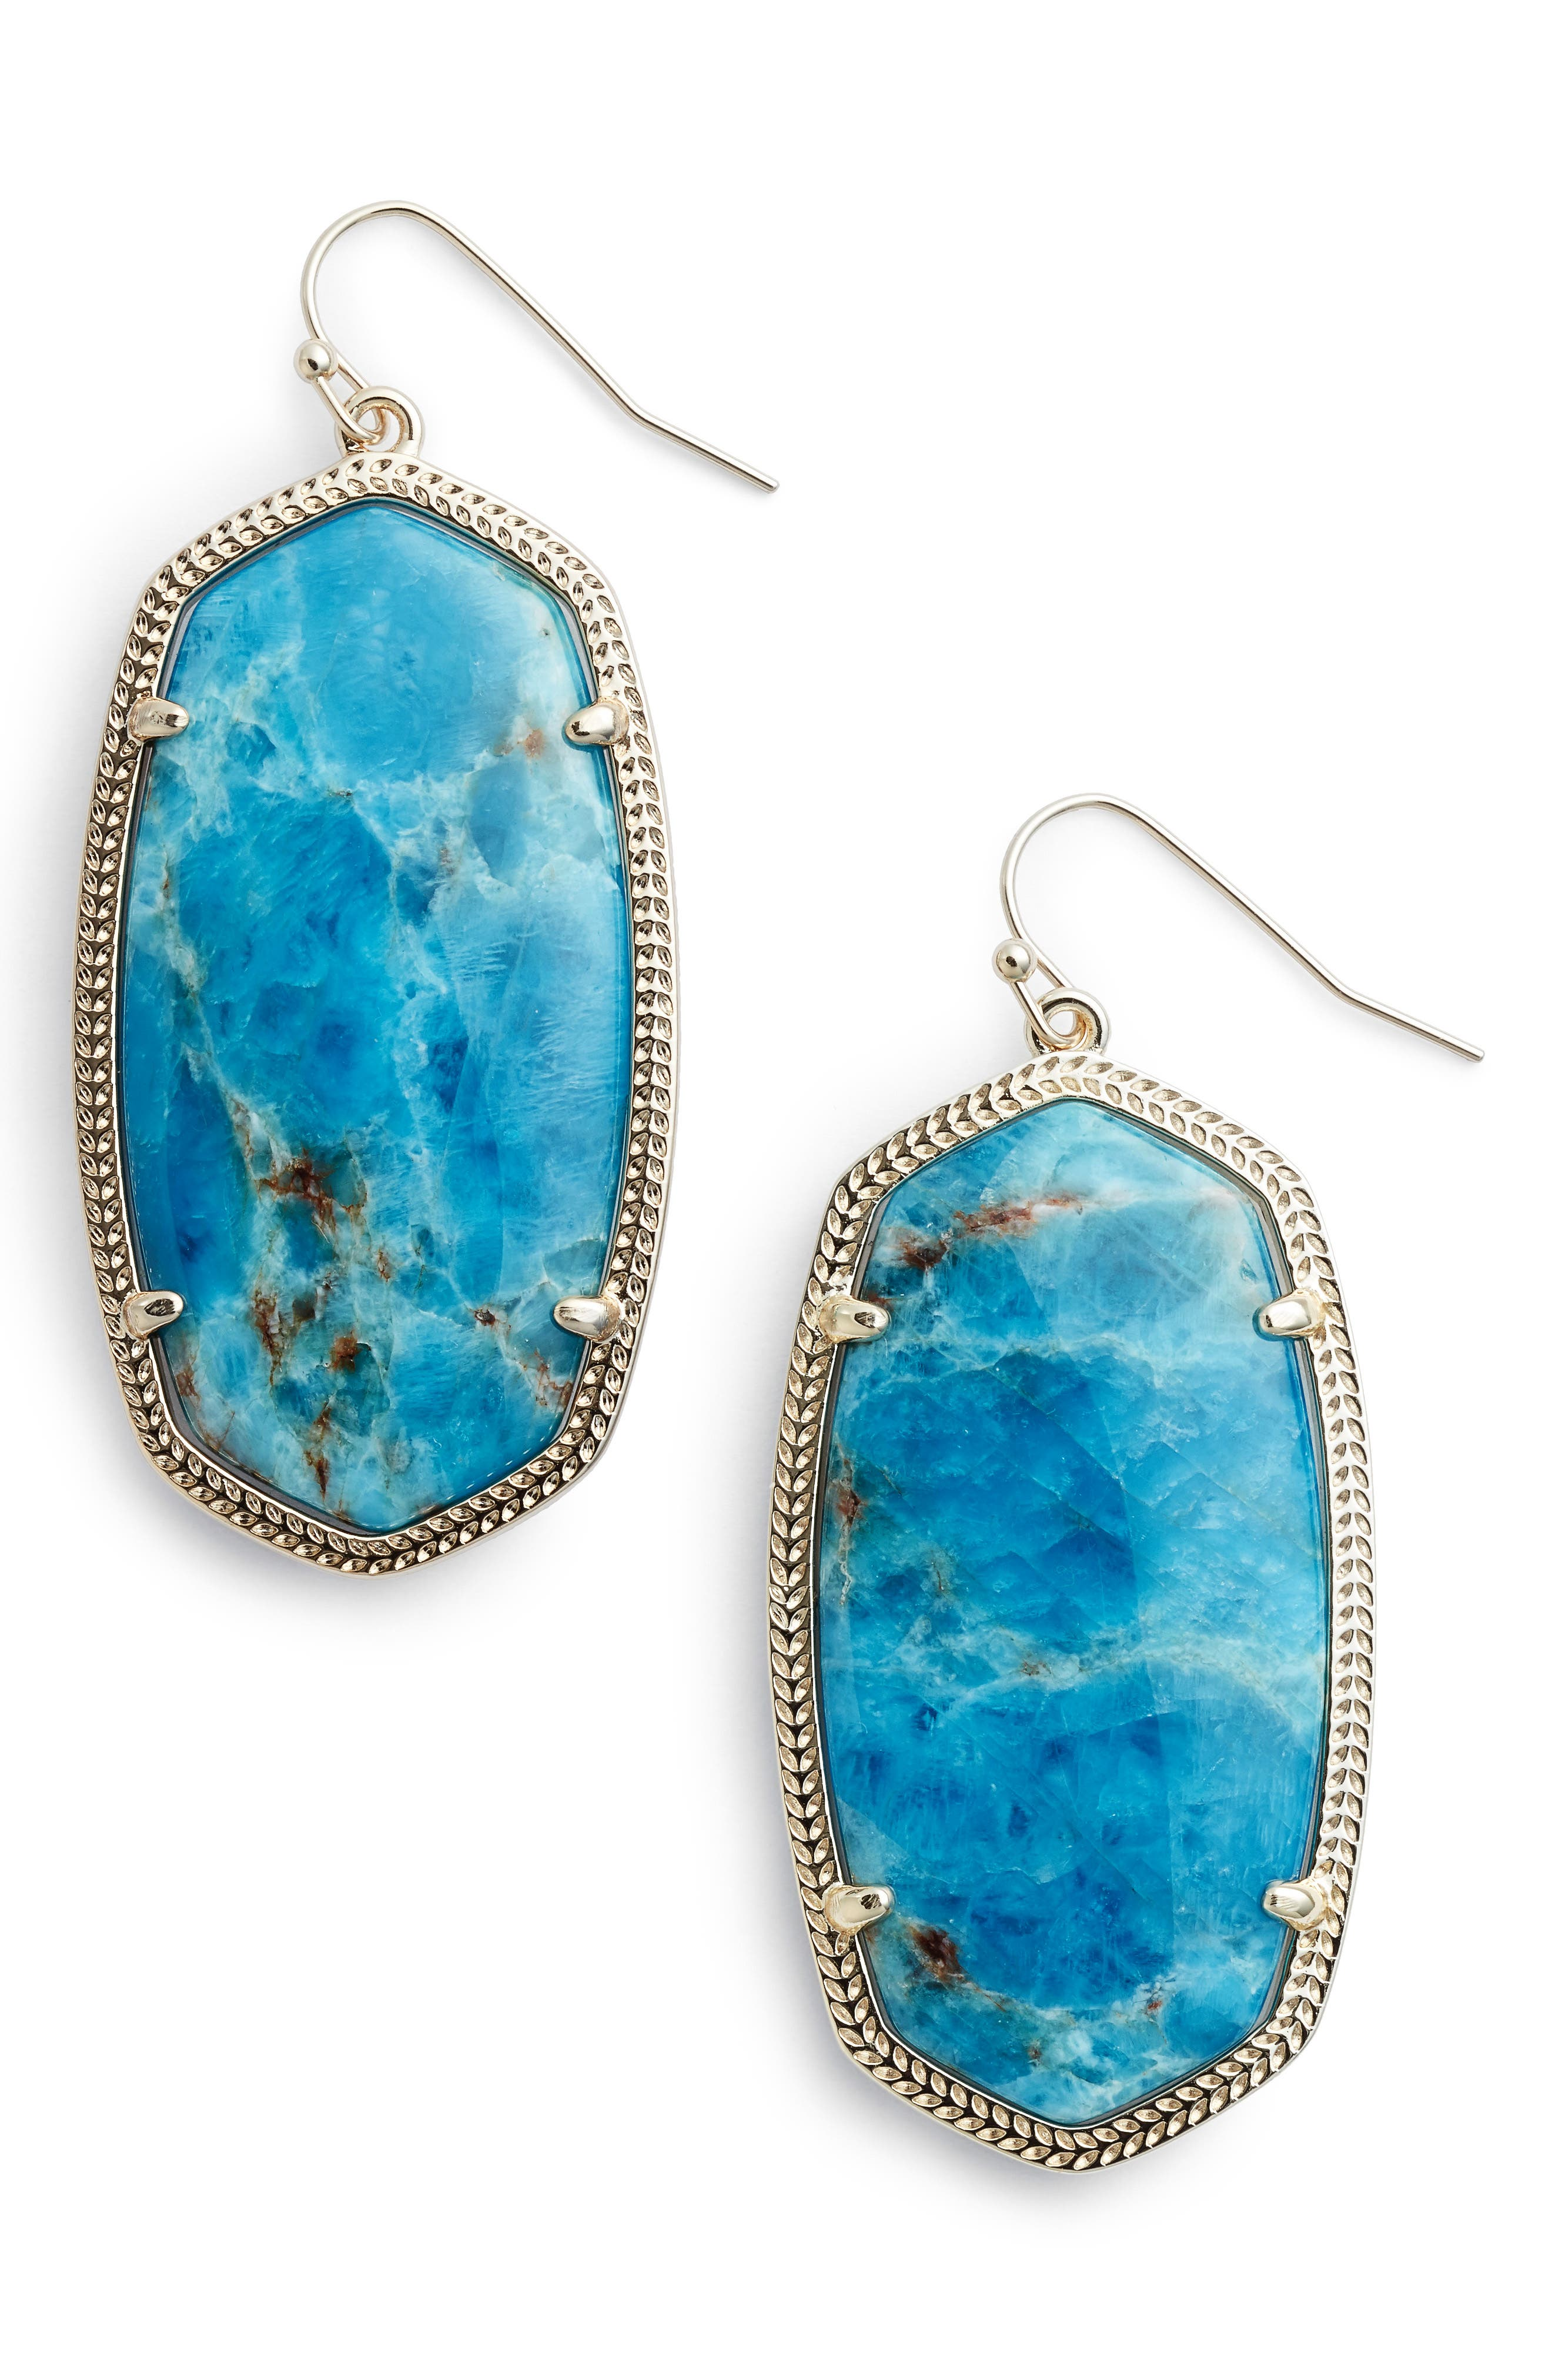 Danielle - Large Oval Statement Earrings,                             Main thumbnail 14, color,